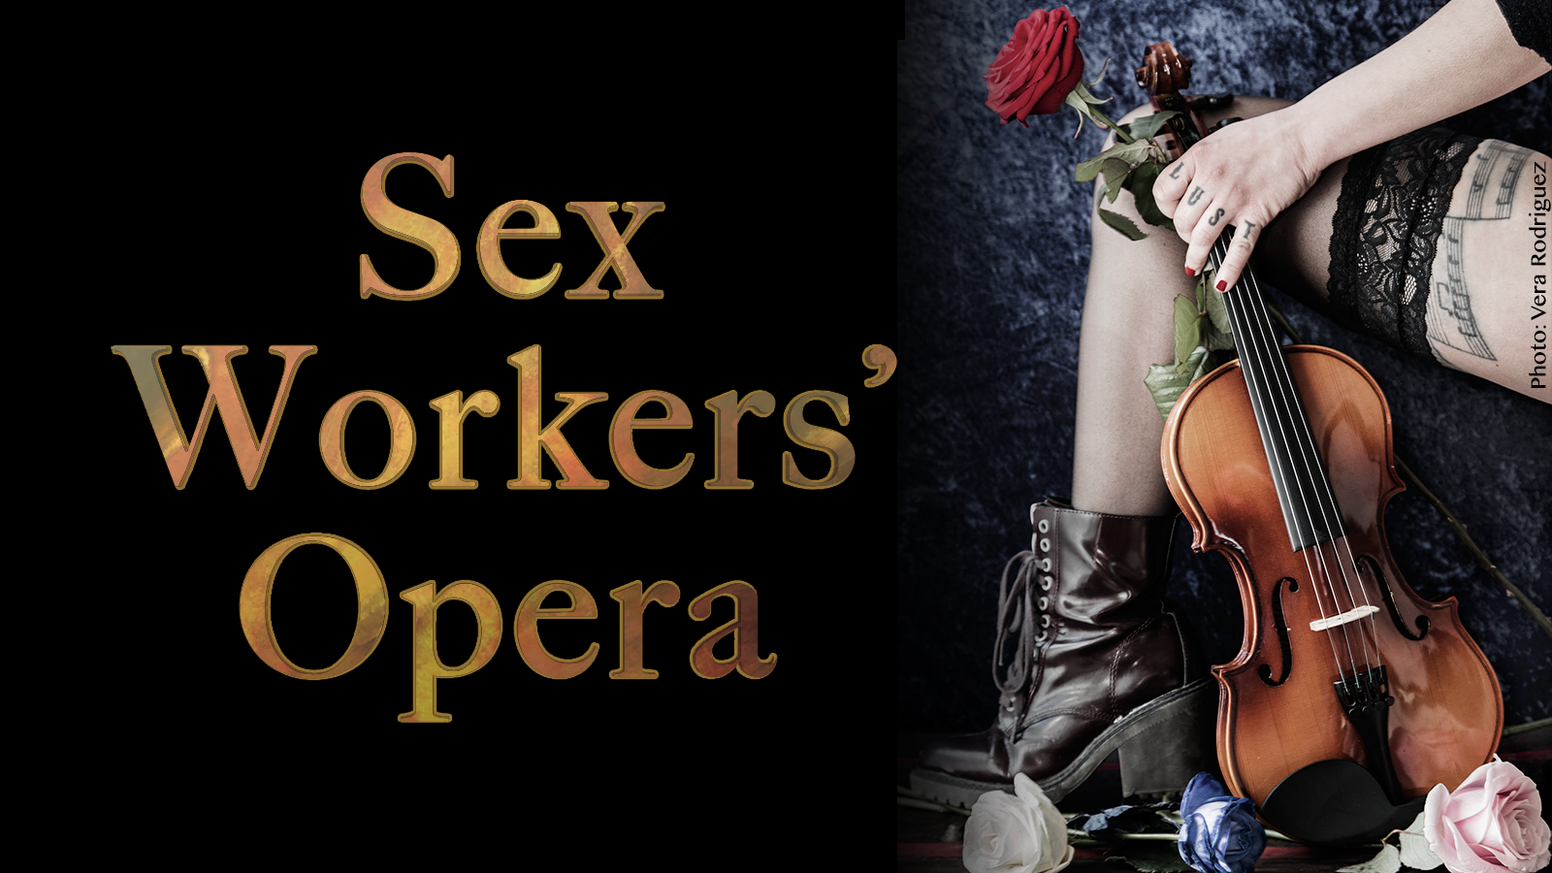 Sex Workers' Opera - Bigger, Braver & Badder  by Experimental